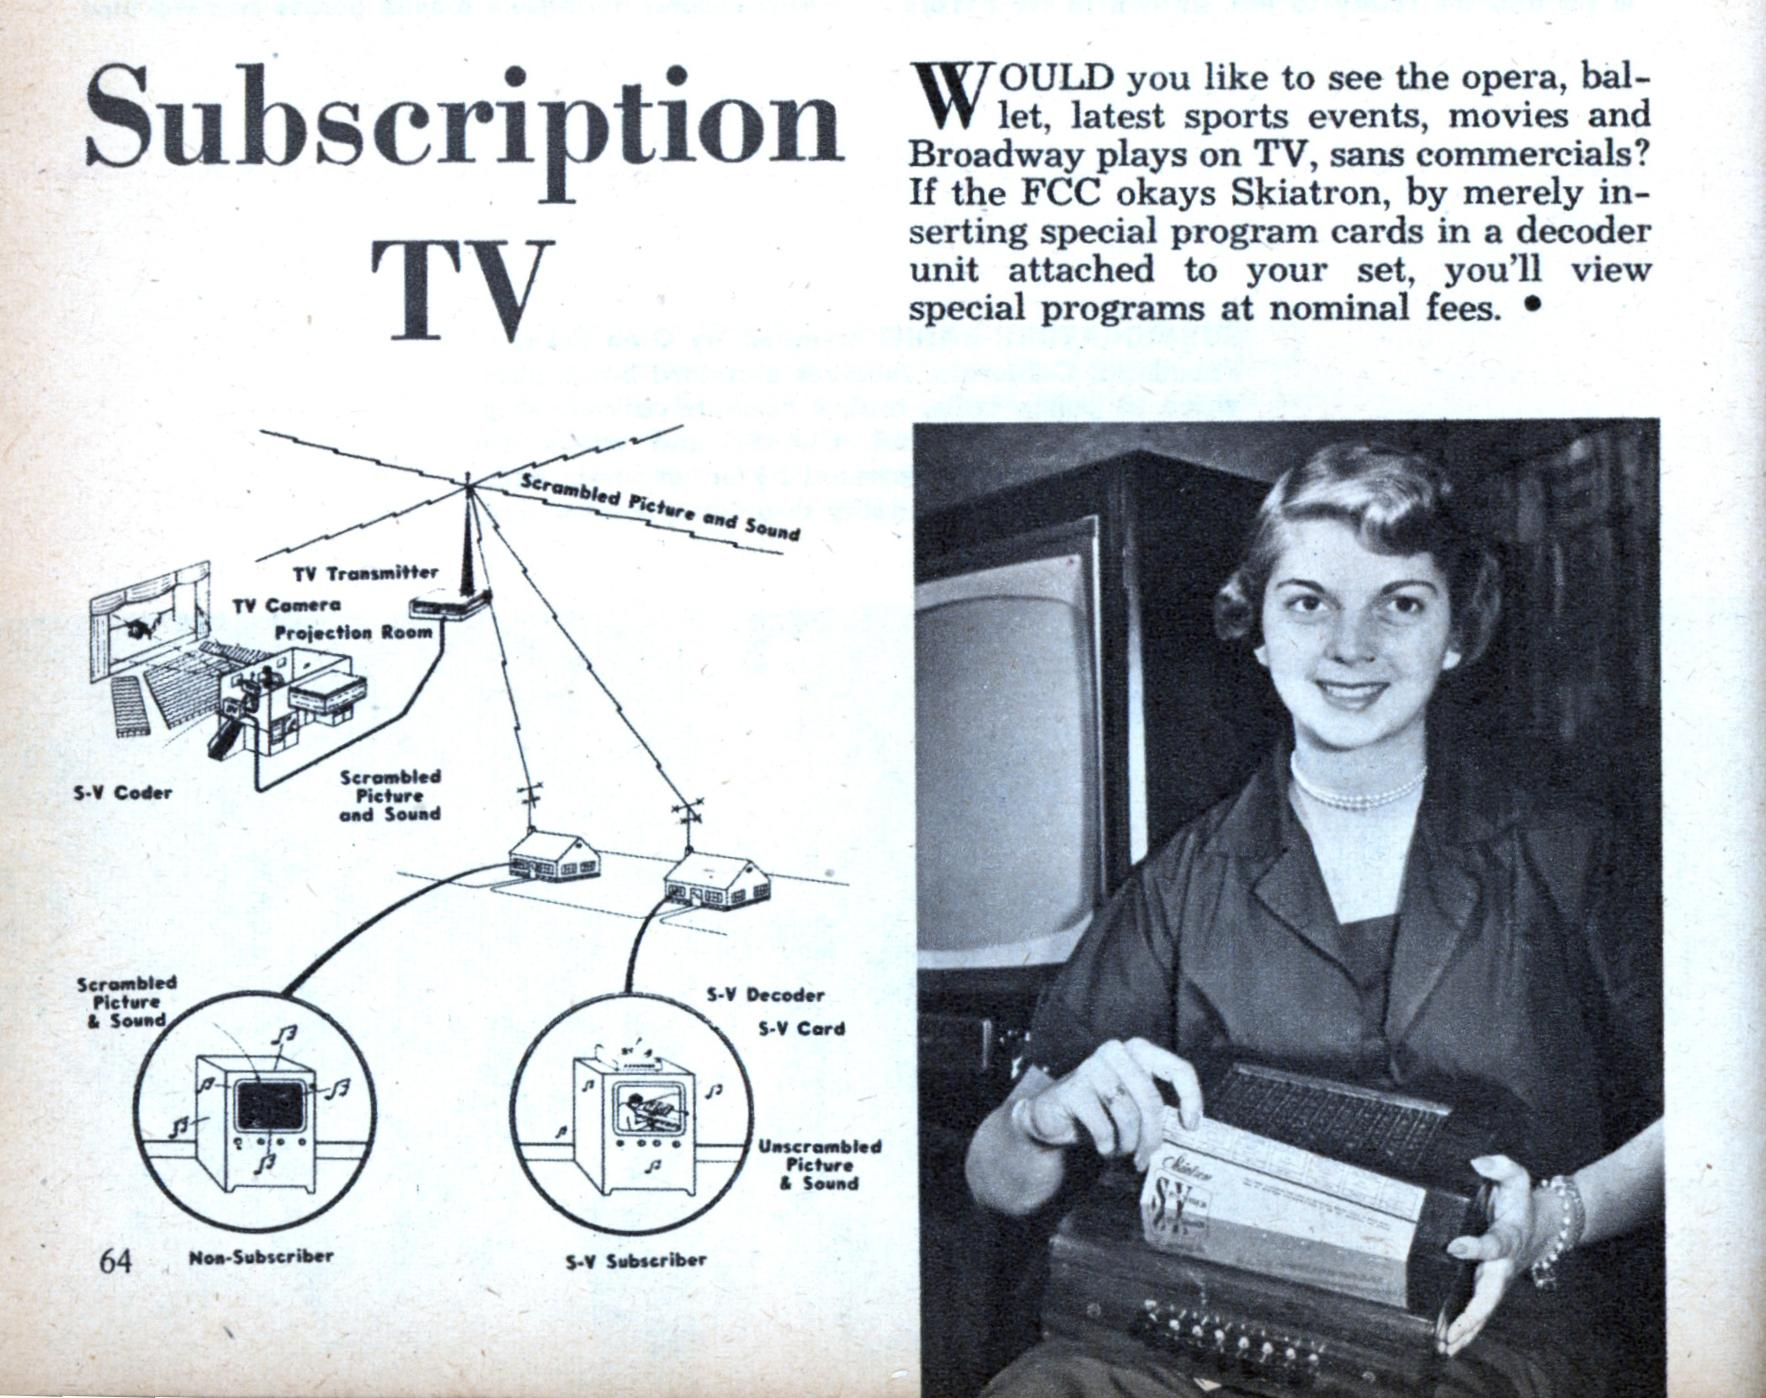 how to add subscption on tv